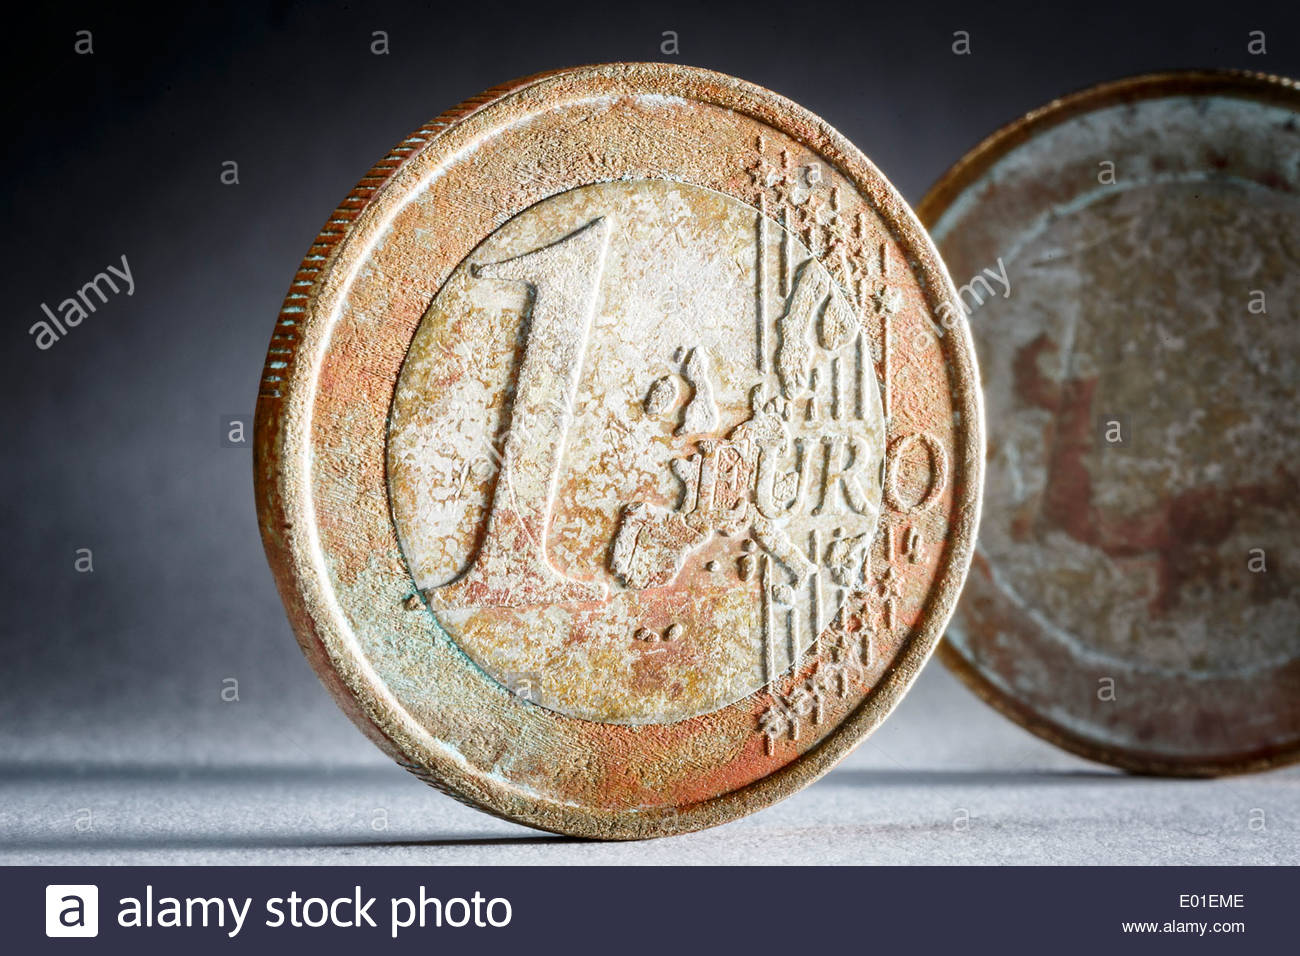 Rusty one-euro coins - Stock Image